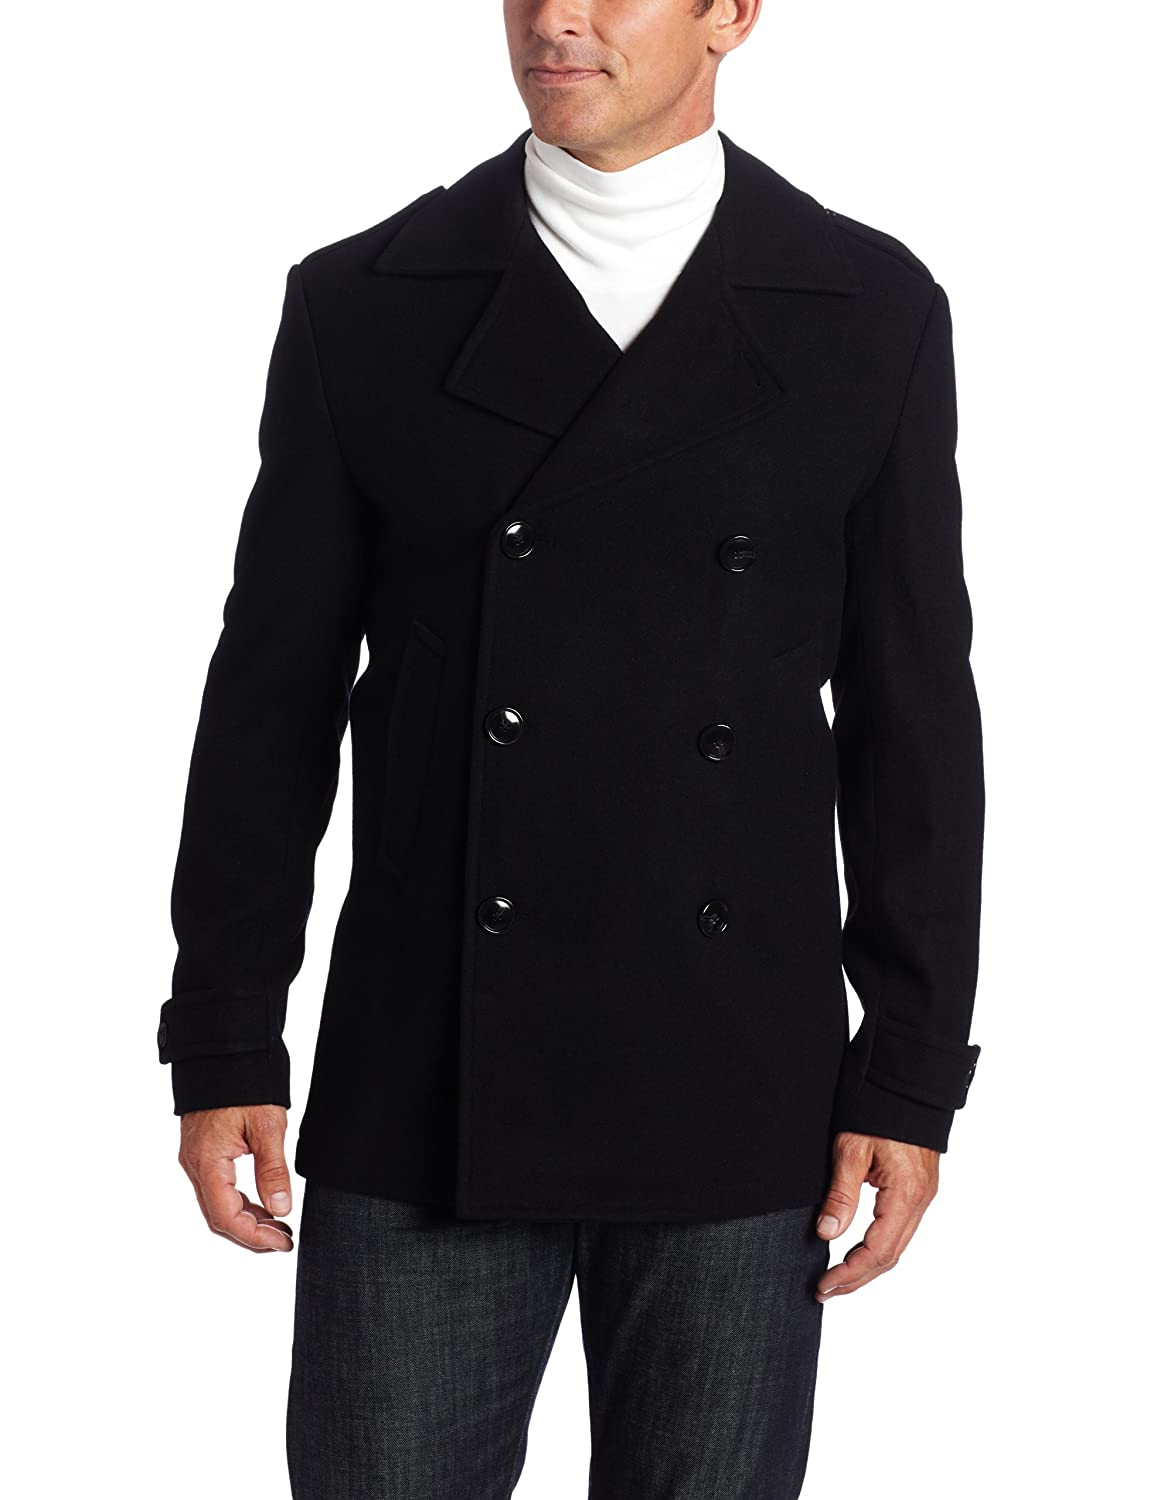 Perry Ellis Men's Peacoat, Black, M